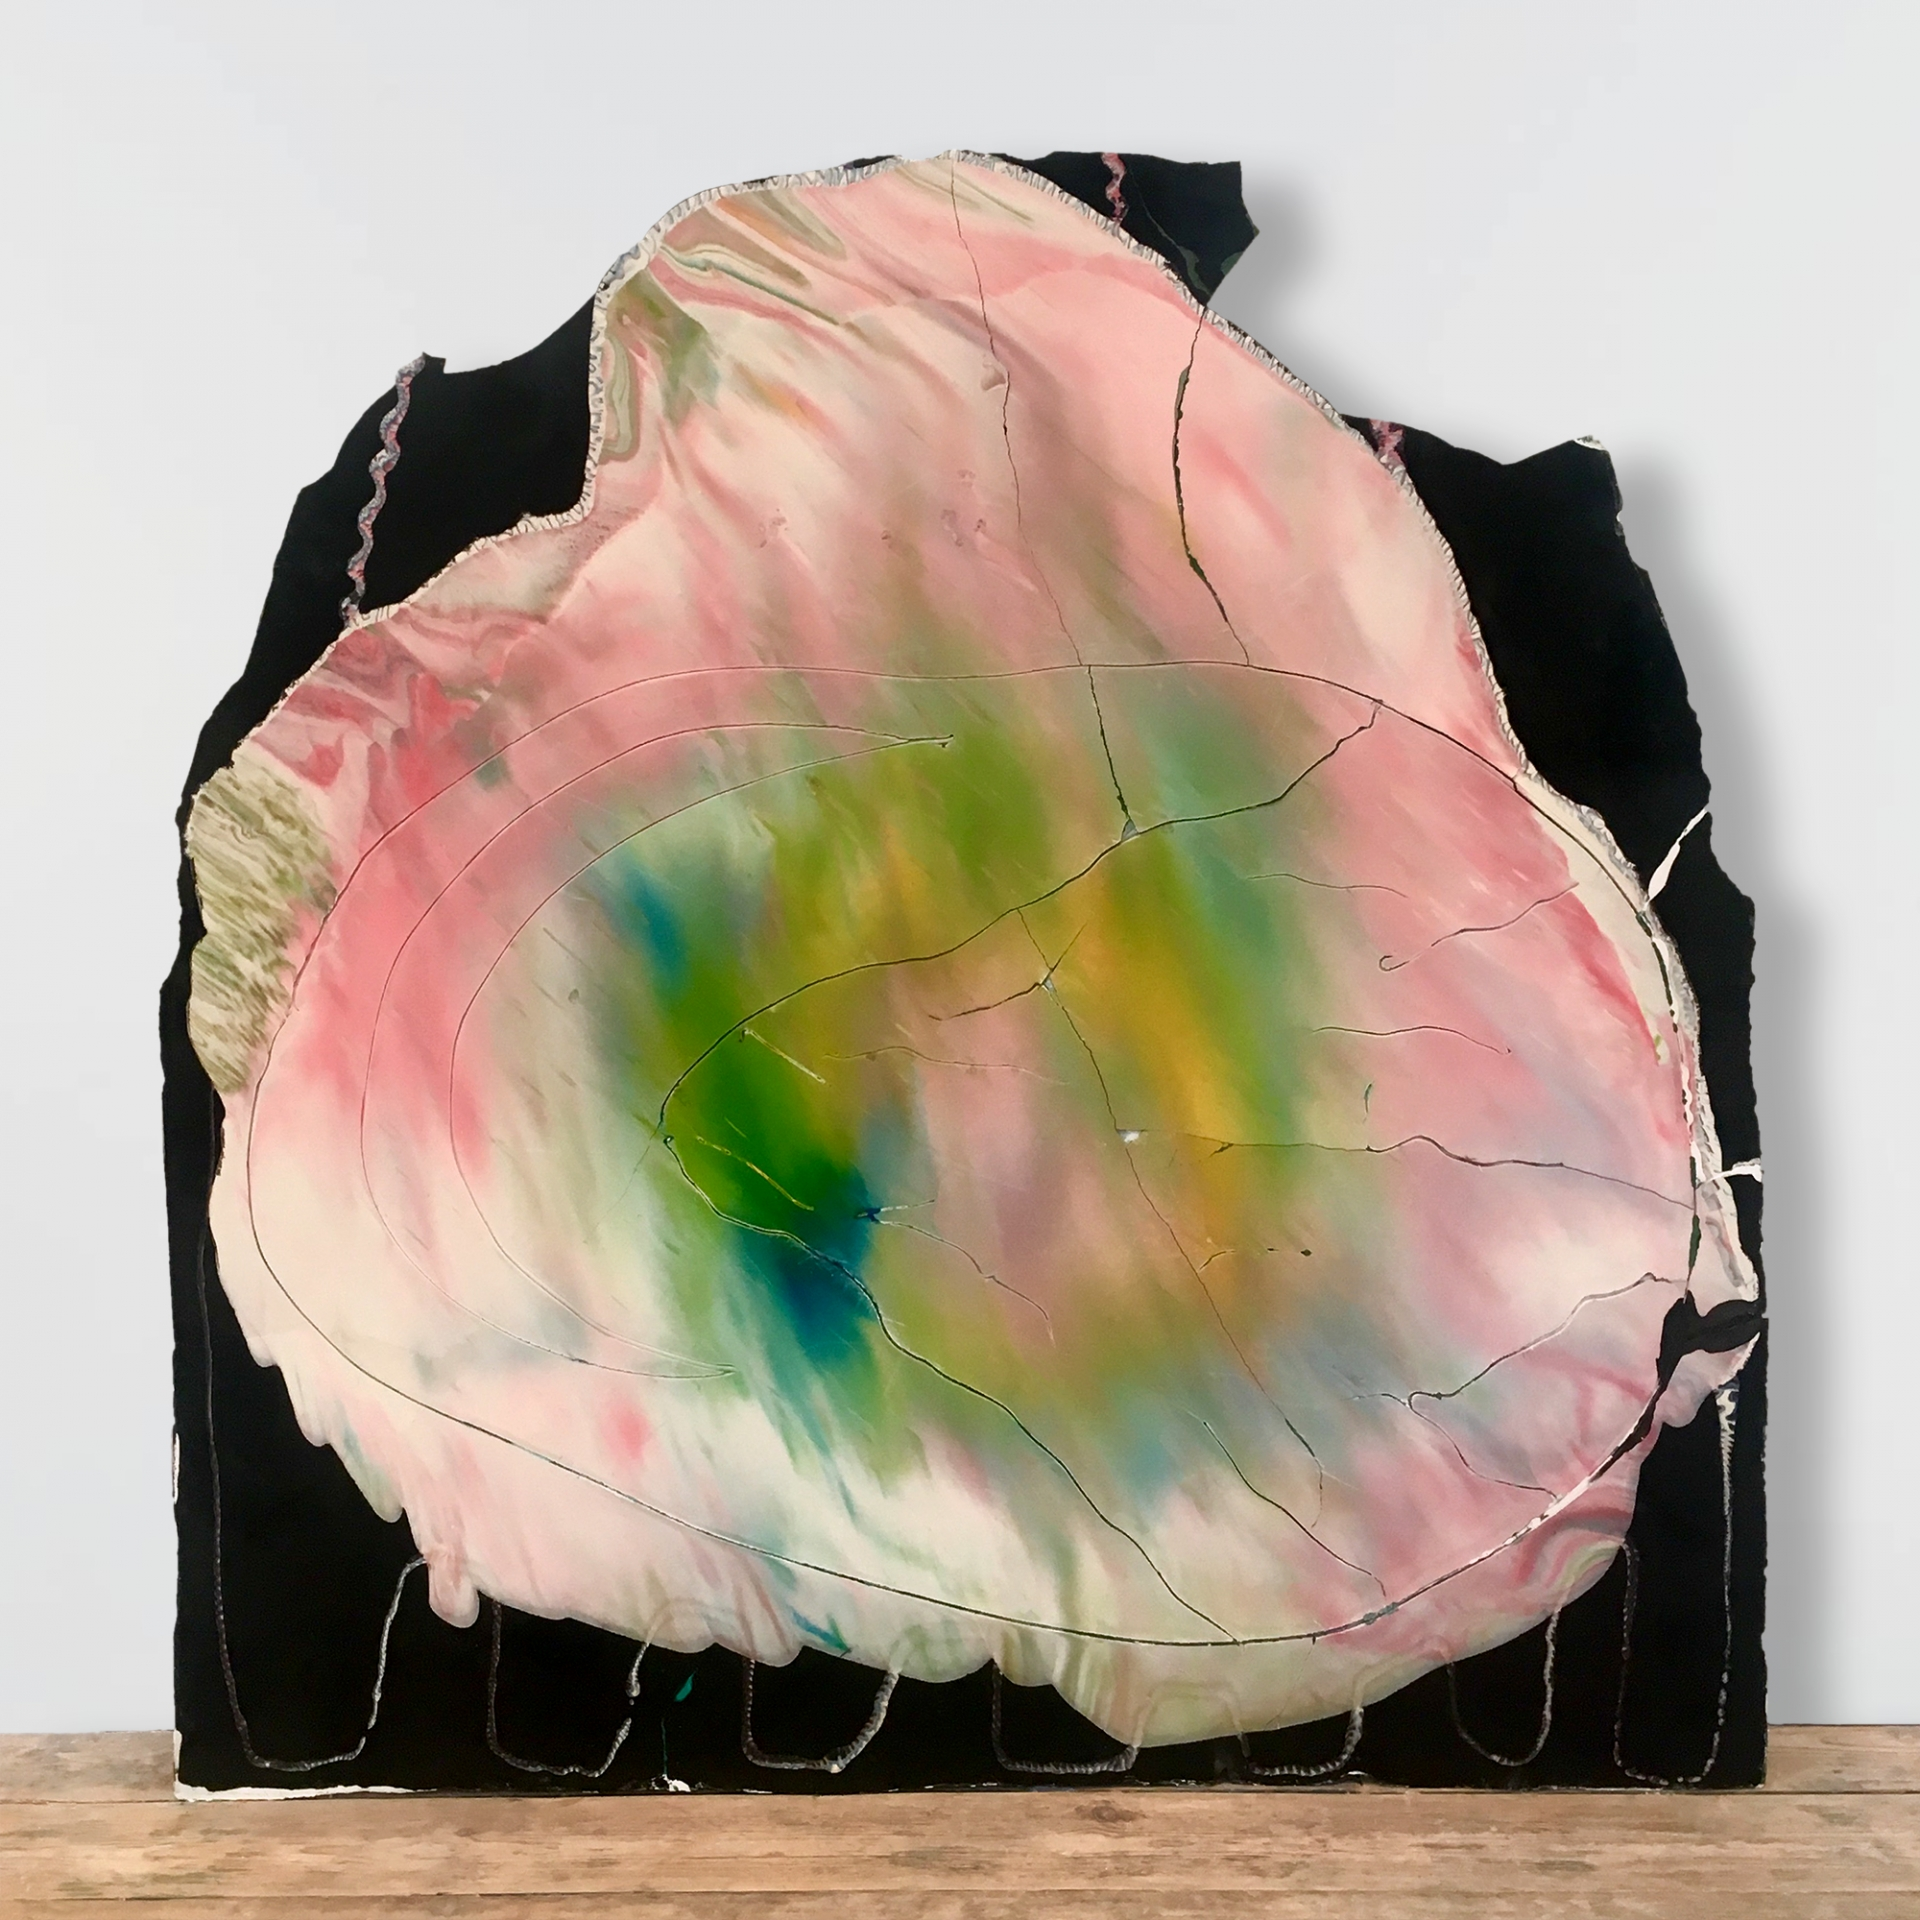 Mountain and Mercies 2018 ////// polymer, plaster, pigments, oil, wax ////// 100cm x 120cm